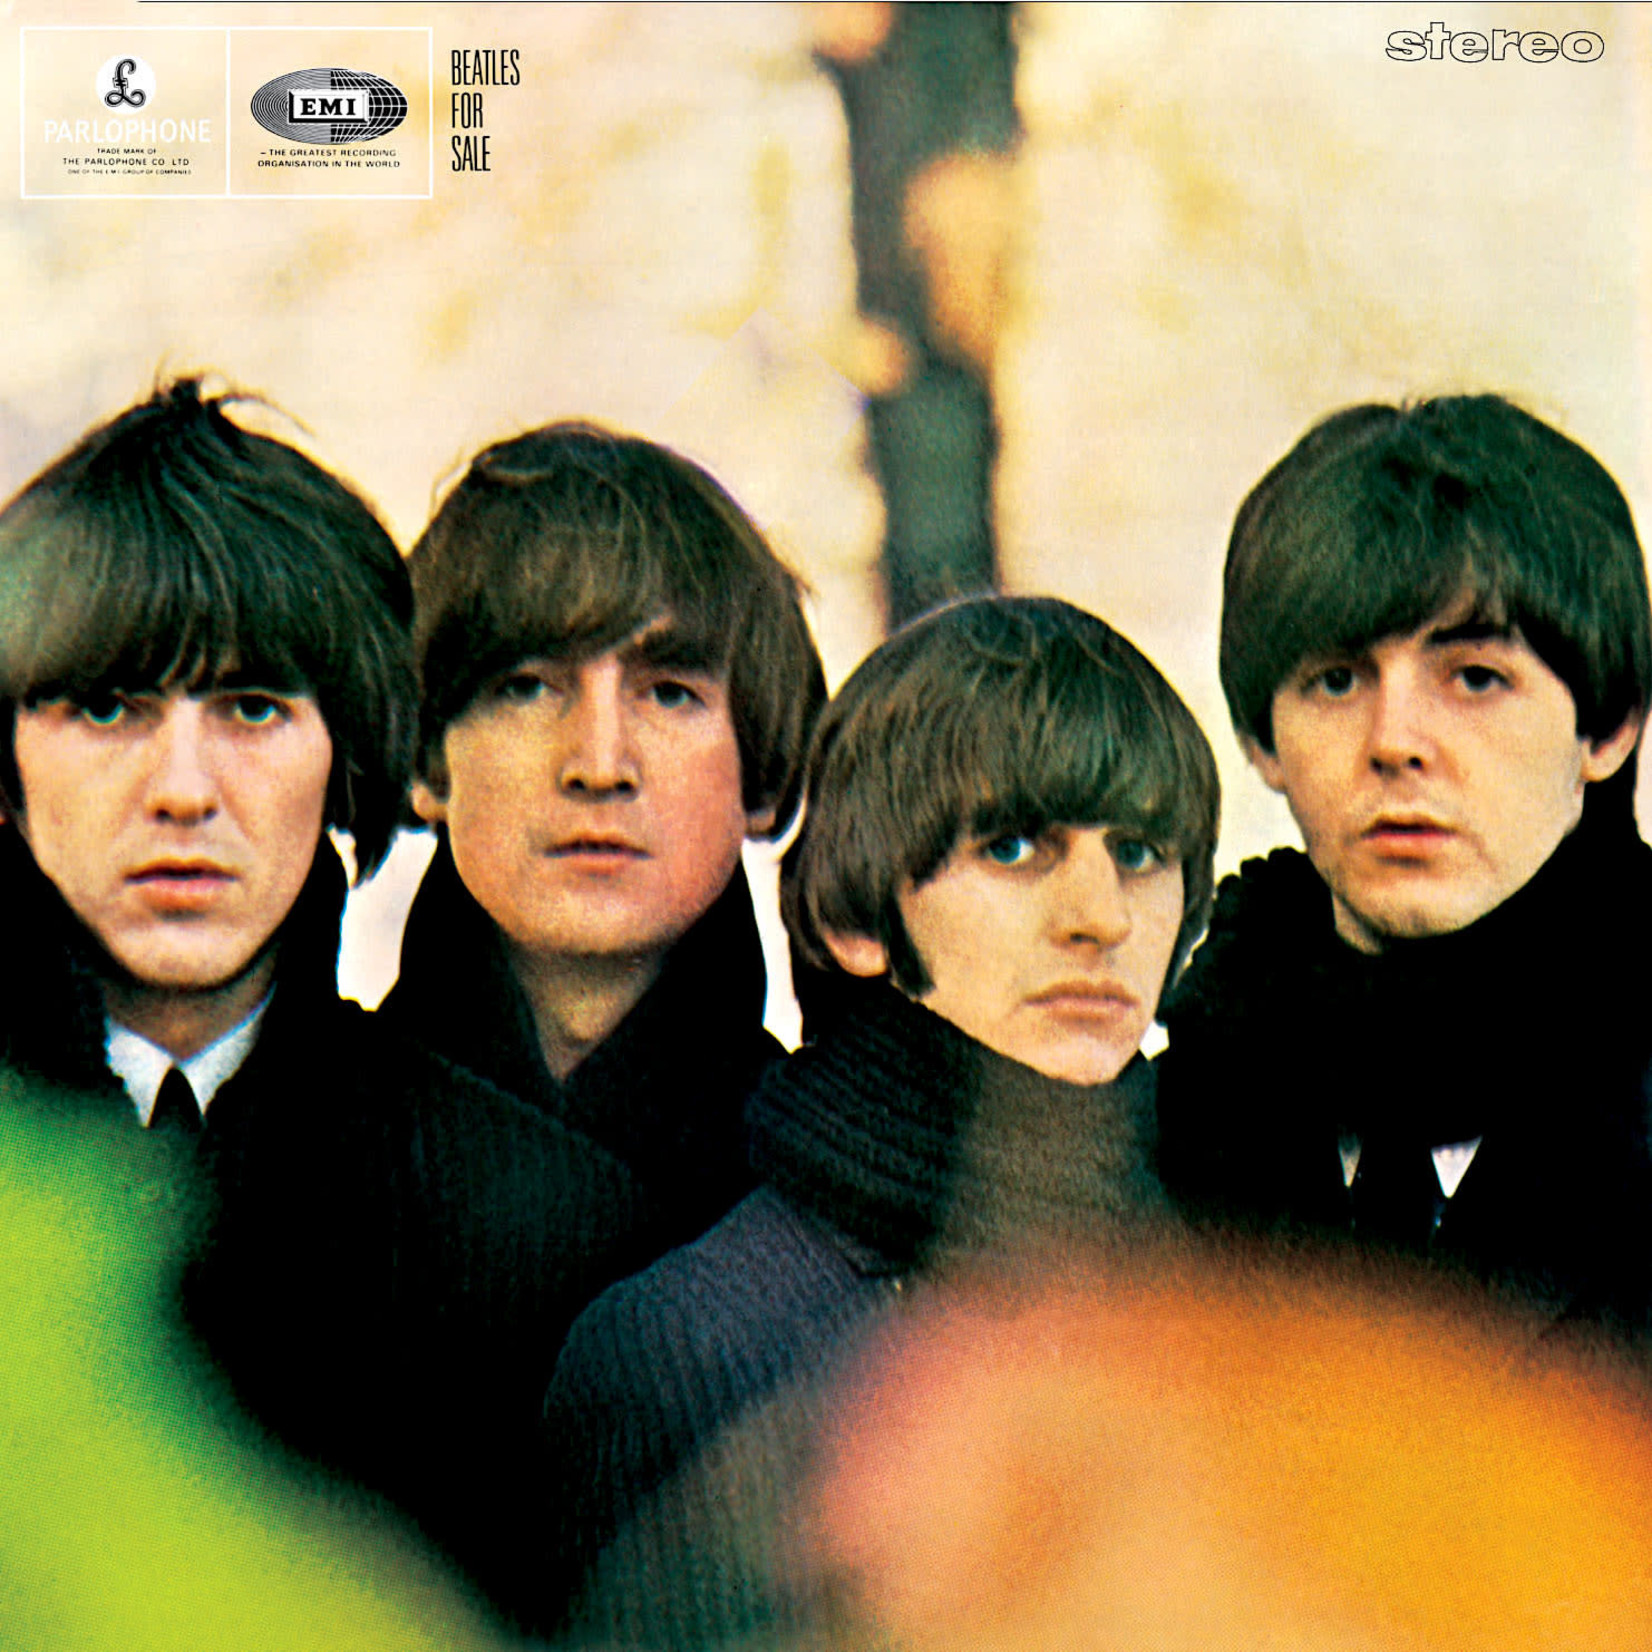 [New] Beatles: Beatles For Sale (stereo mix)